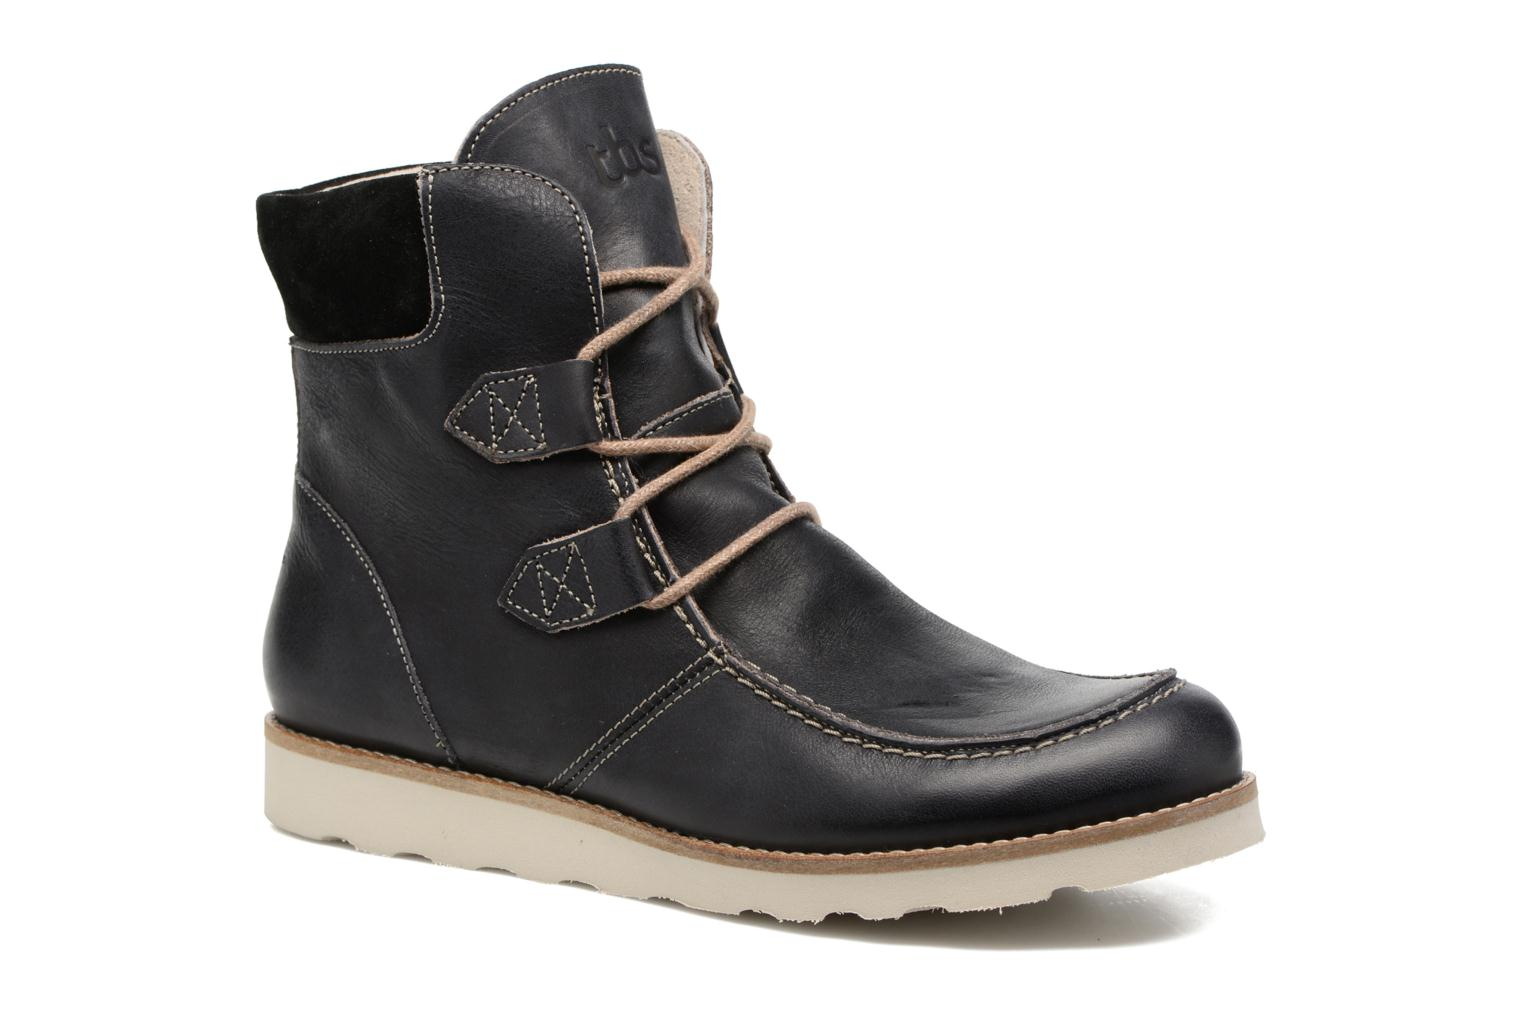 Tbs Boots Ariana Tbs Soldes 2XDVqm